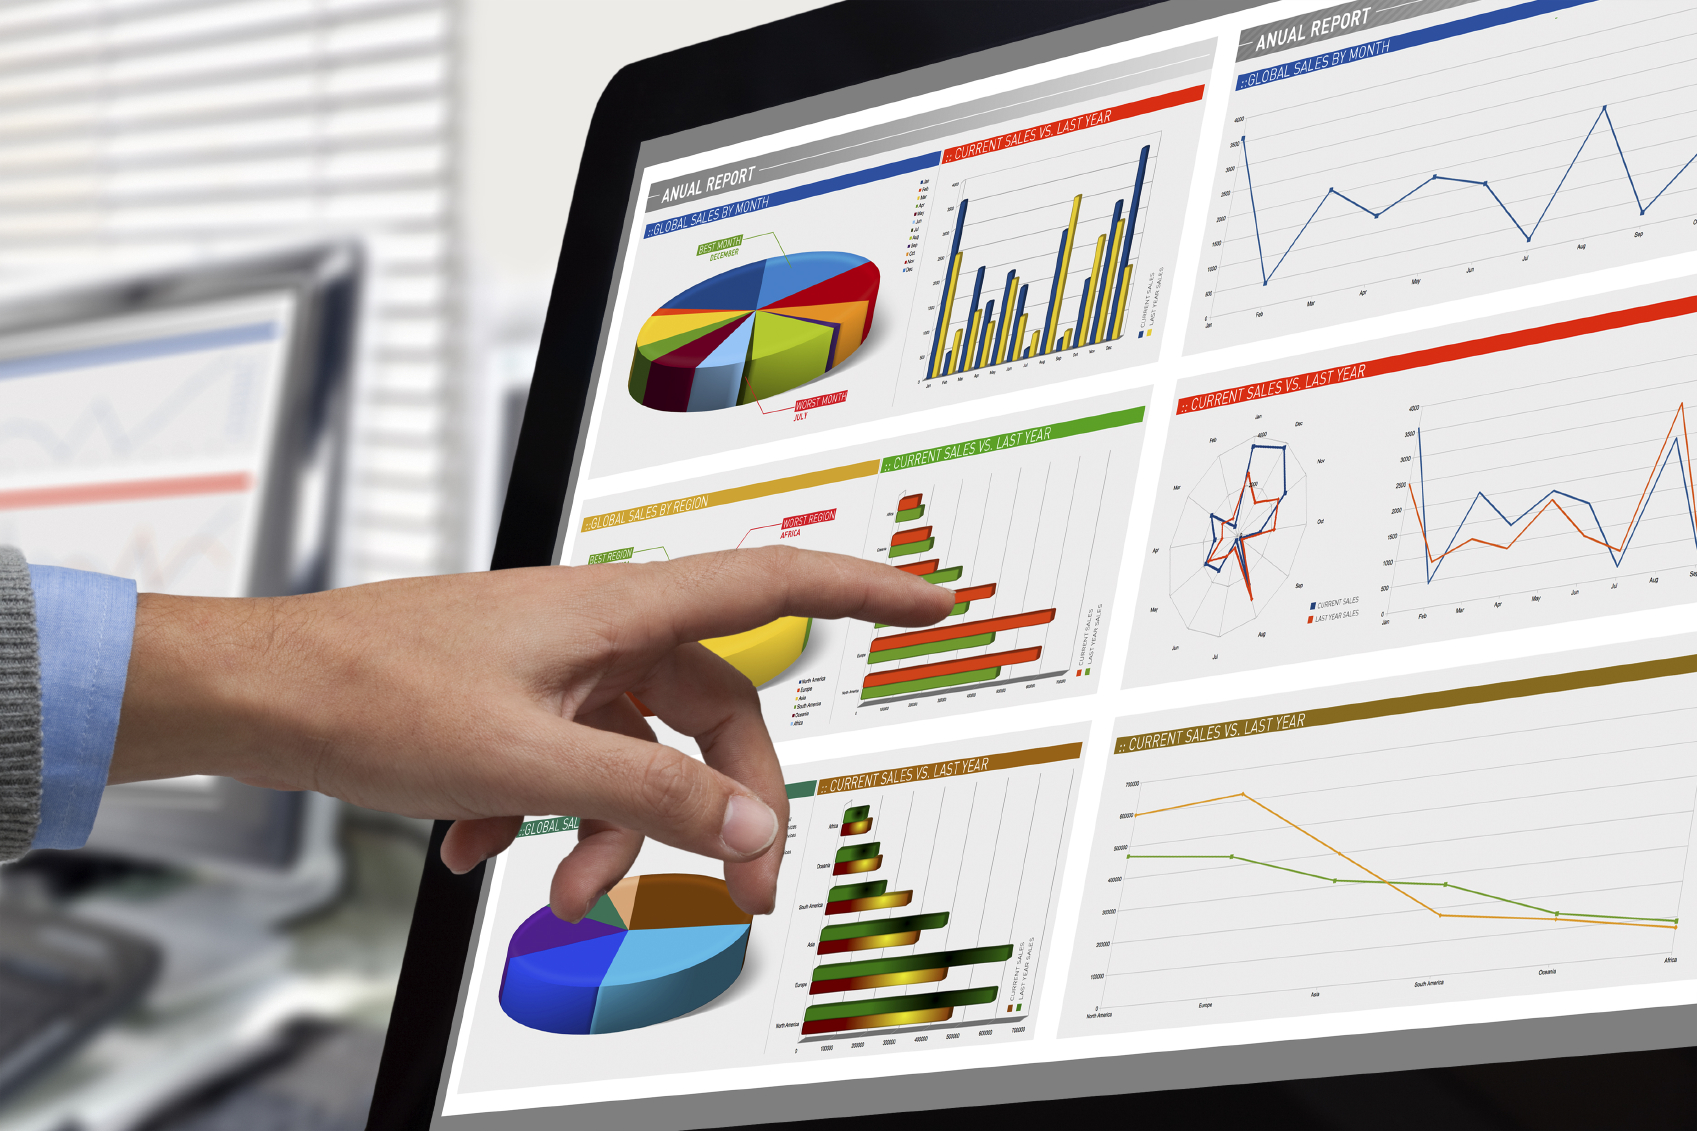 Using Real Time Analytic Tools To Hook Up With The Best